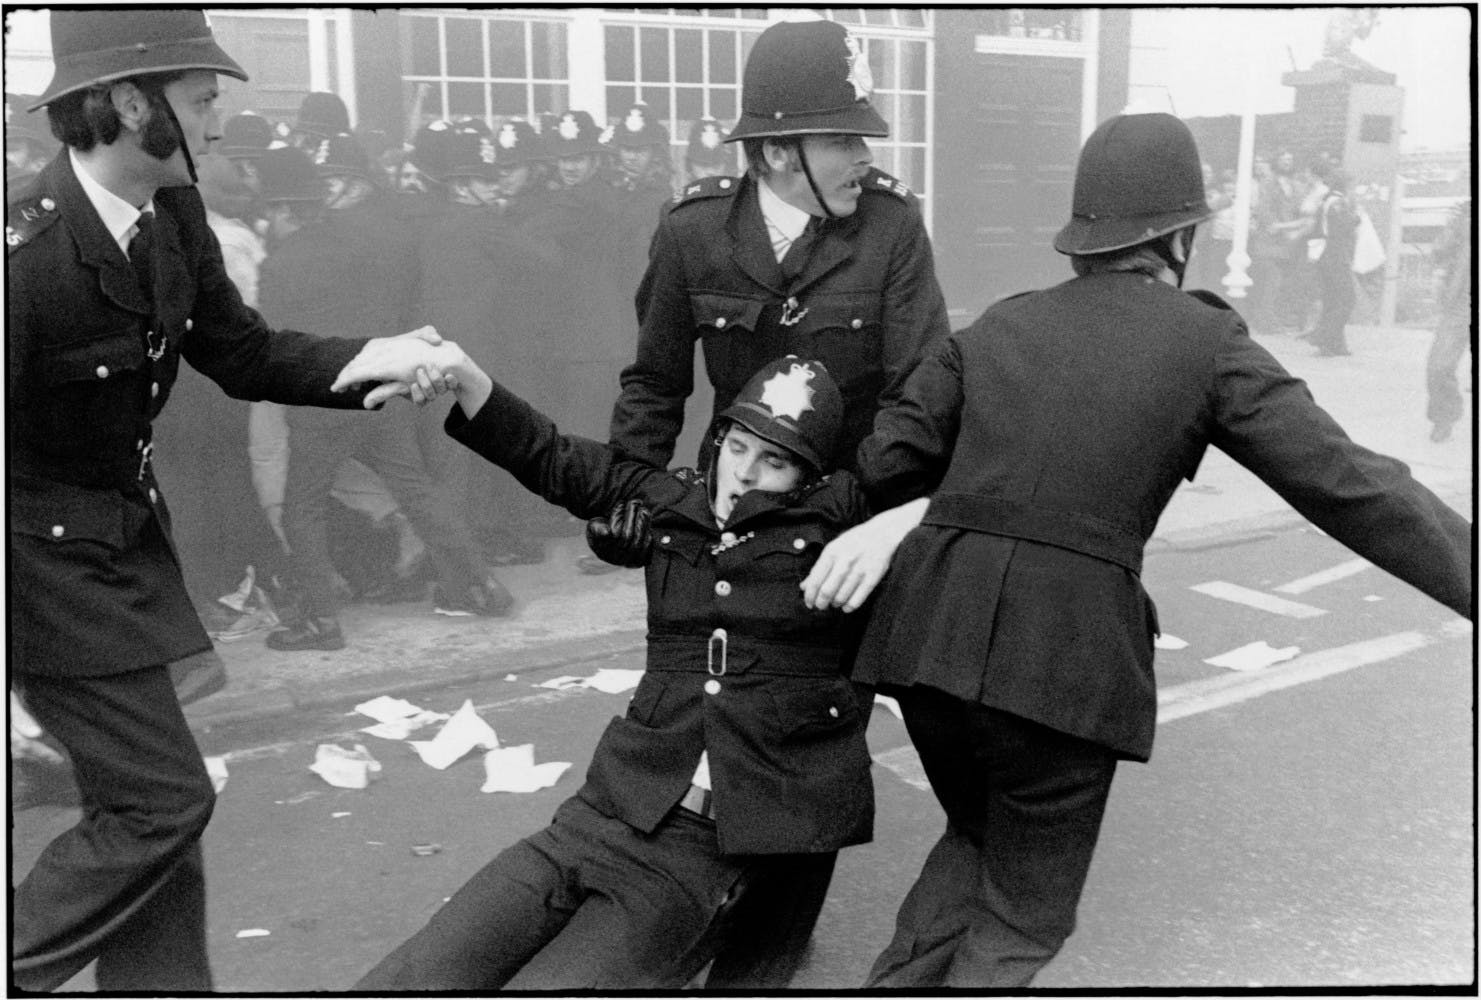 Chris Steele-Perkins Injured policeman during a National Front Demo. London. England. GB. 1977.